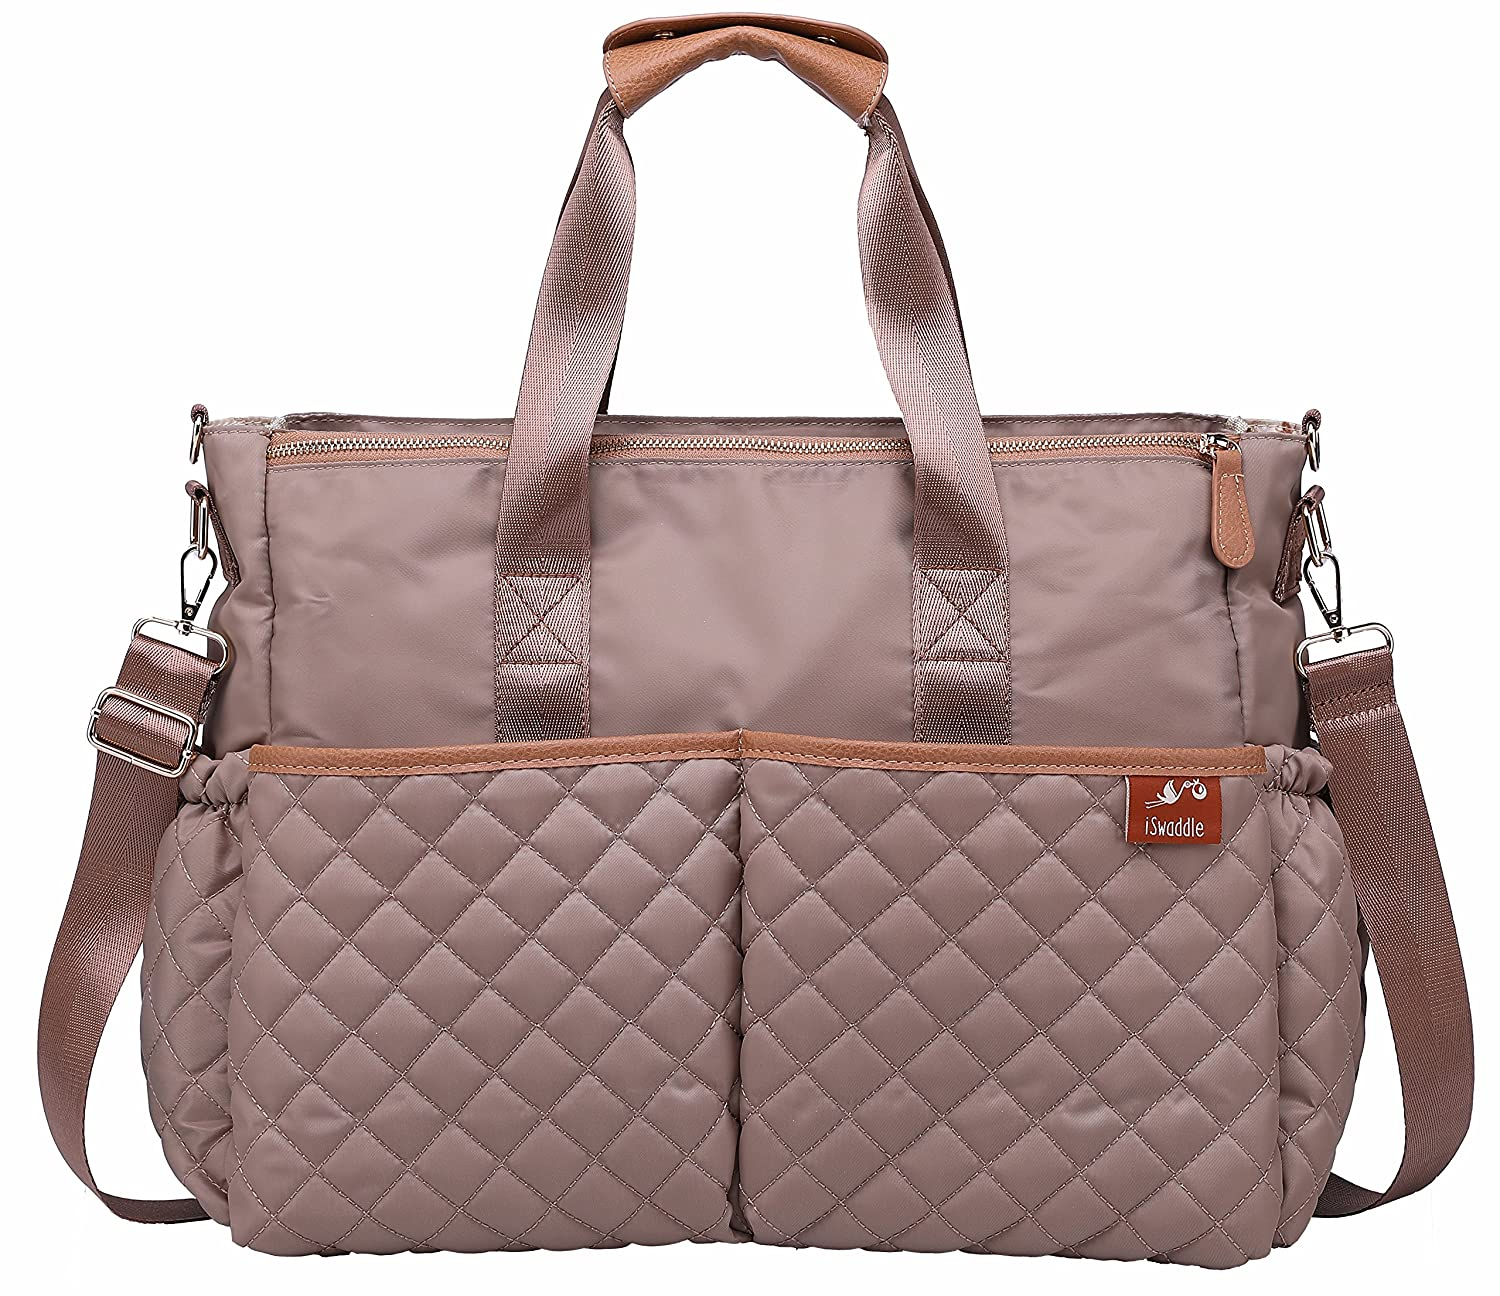 Trendy Water Resistant Quilted Design Baby Changing, Nappy, Diaper Bag With Integrated Stroller Clips and Removable/Adjustable Shoulder Strap. BONUS - Includes Matching Changing Mat (Cream) iSwaddle